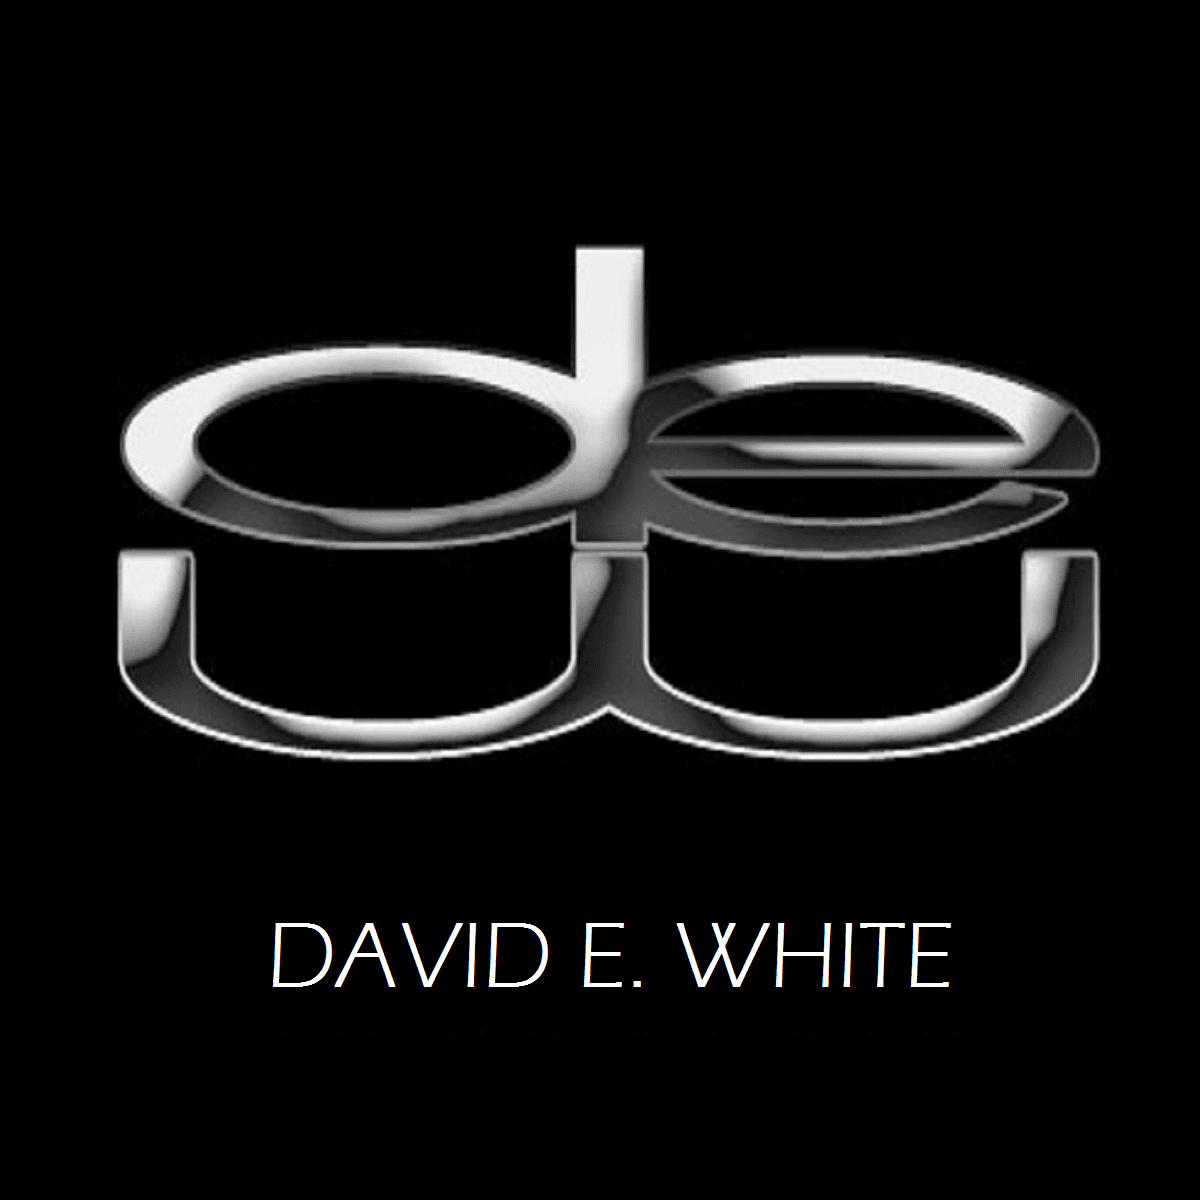 David E. White Men's Clothing